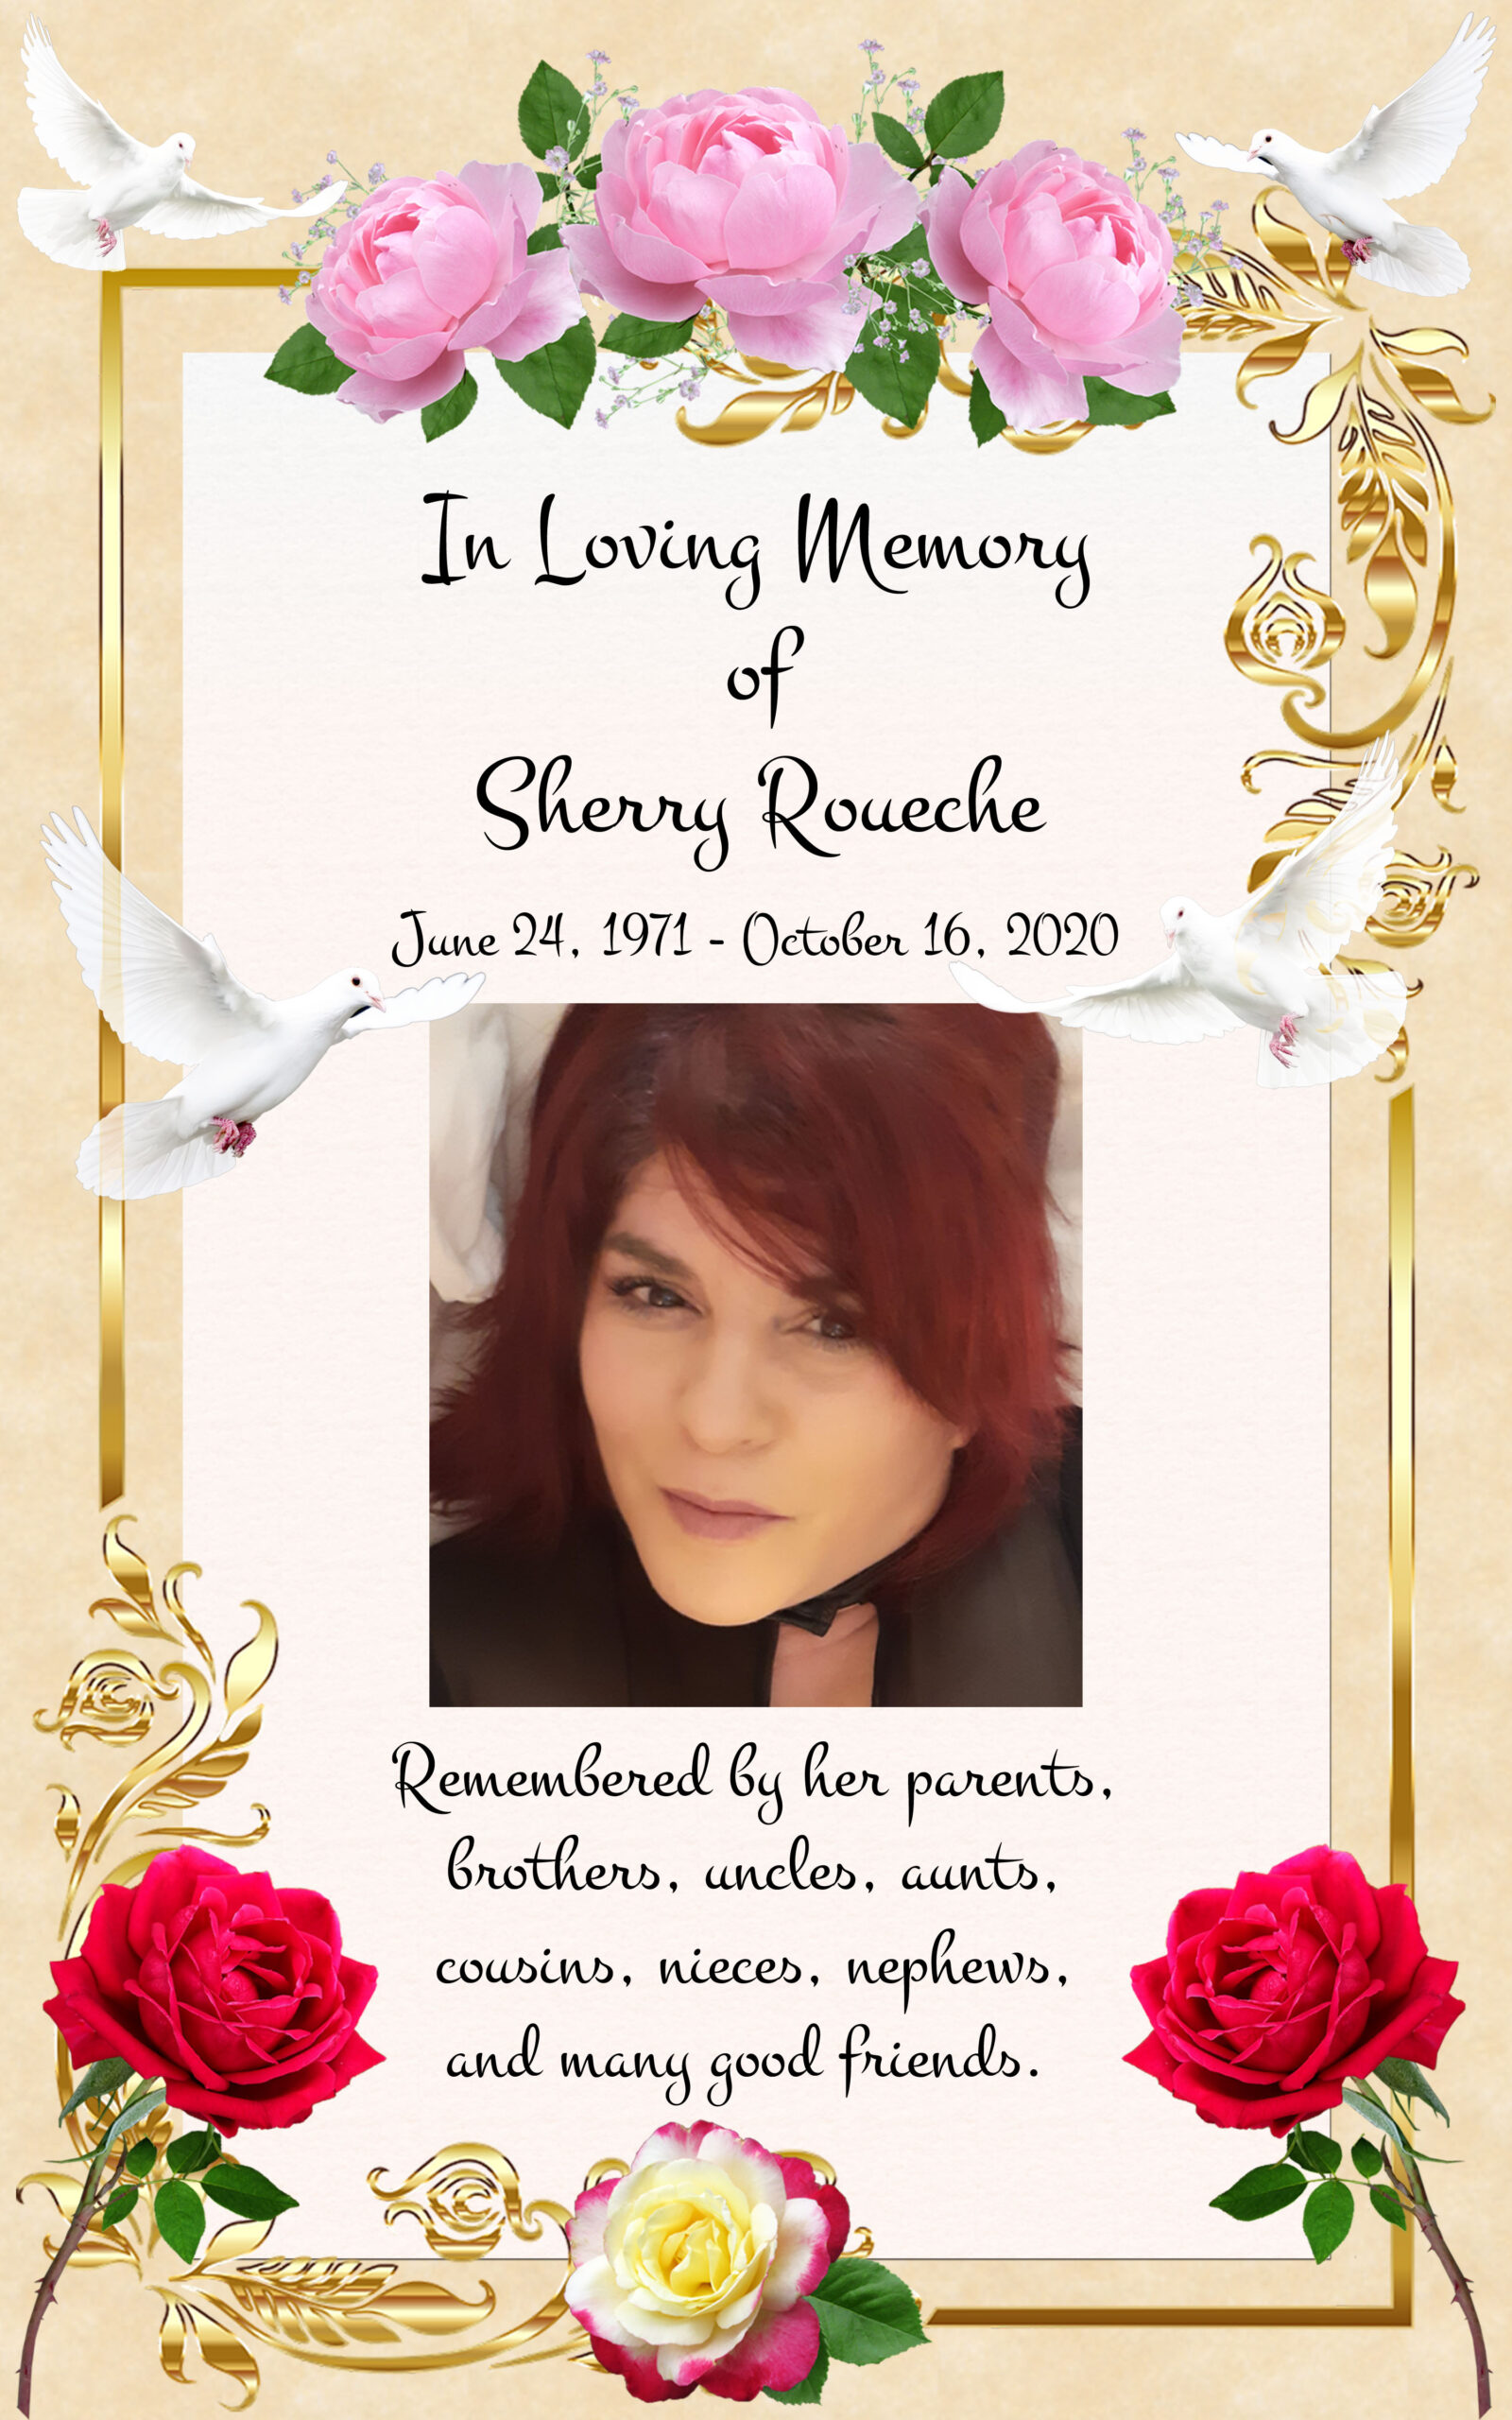 In Memory of Sherry Roueche